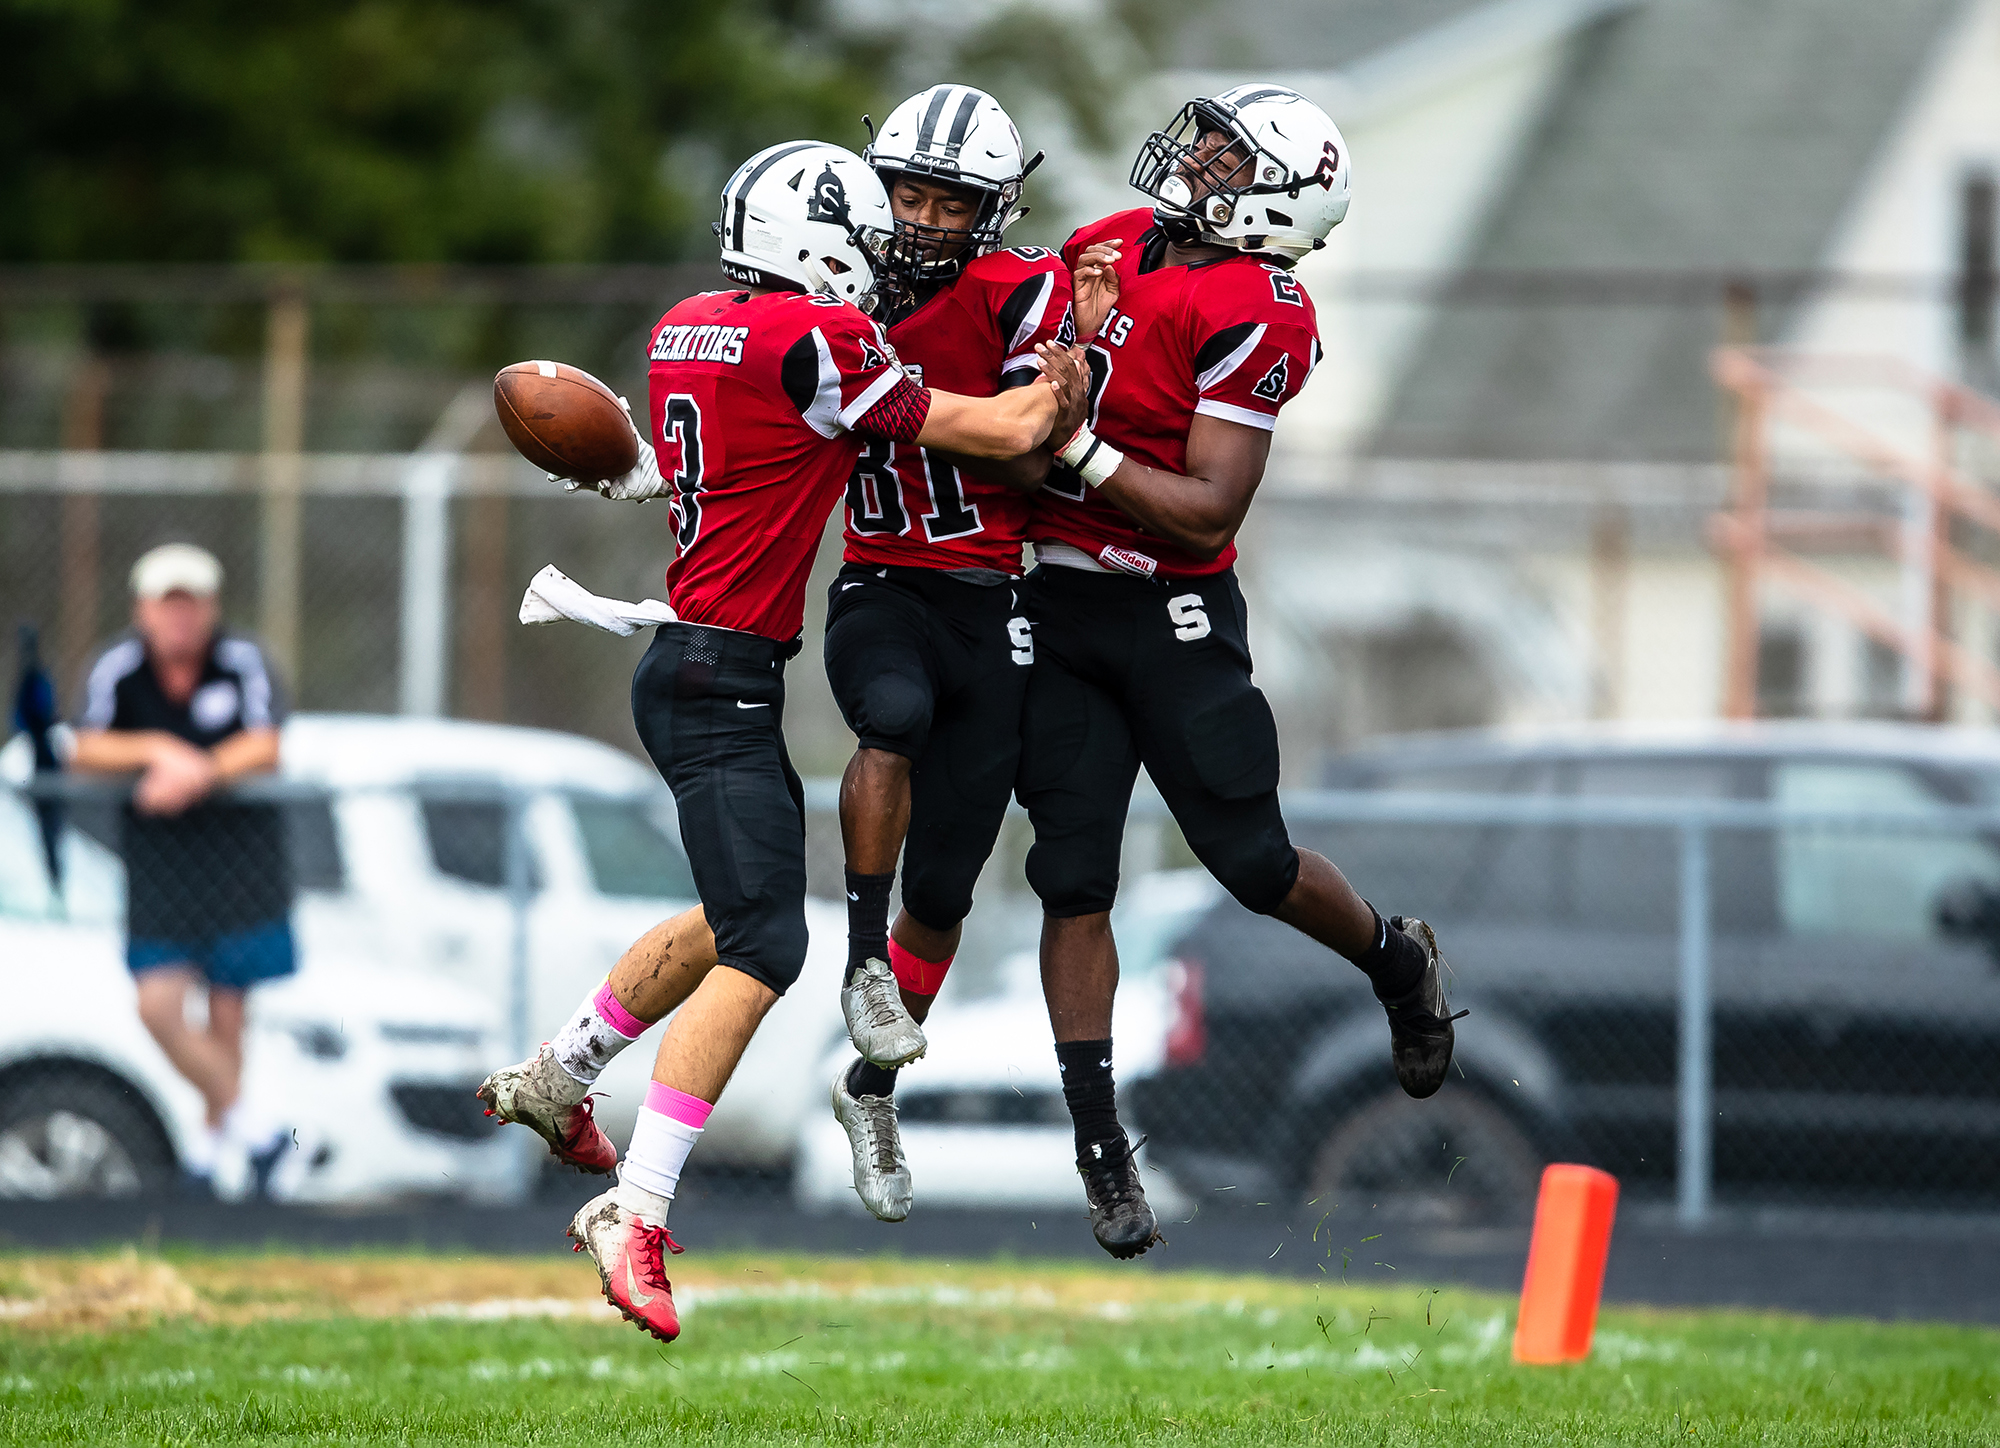 Springfield's John Waddy (81) celebrates his touchdown against Rochester with Springfield's Taryn Wallace (2) and Springfield's Steven Boucher (3) in the first half at Memorial Stadium, Saturday, Oct. 6, 2018, in Springfield, Ill. [Justin L. Fowler/The State Journal-Register]